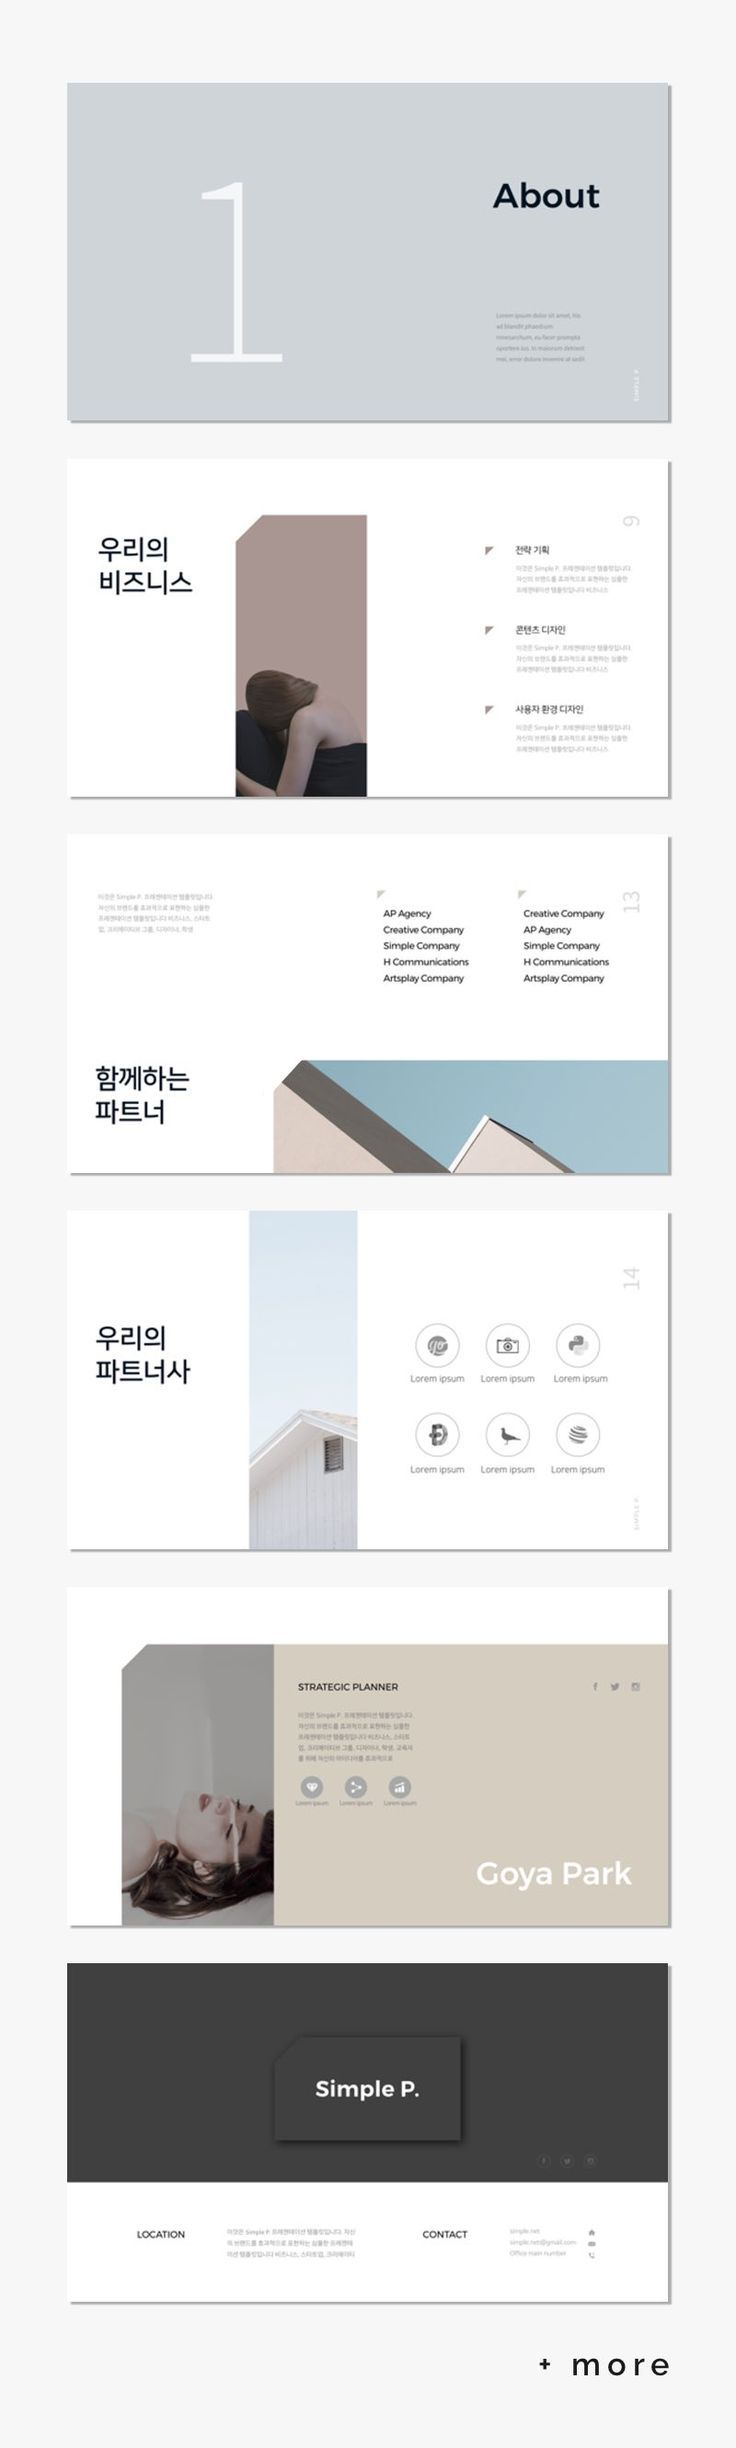 simple layout design simple ppt l a y o u t pinterest ppt